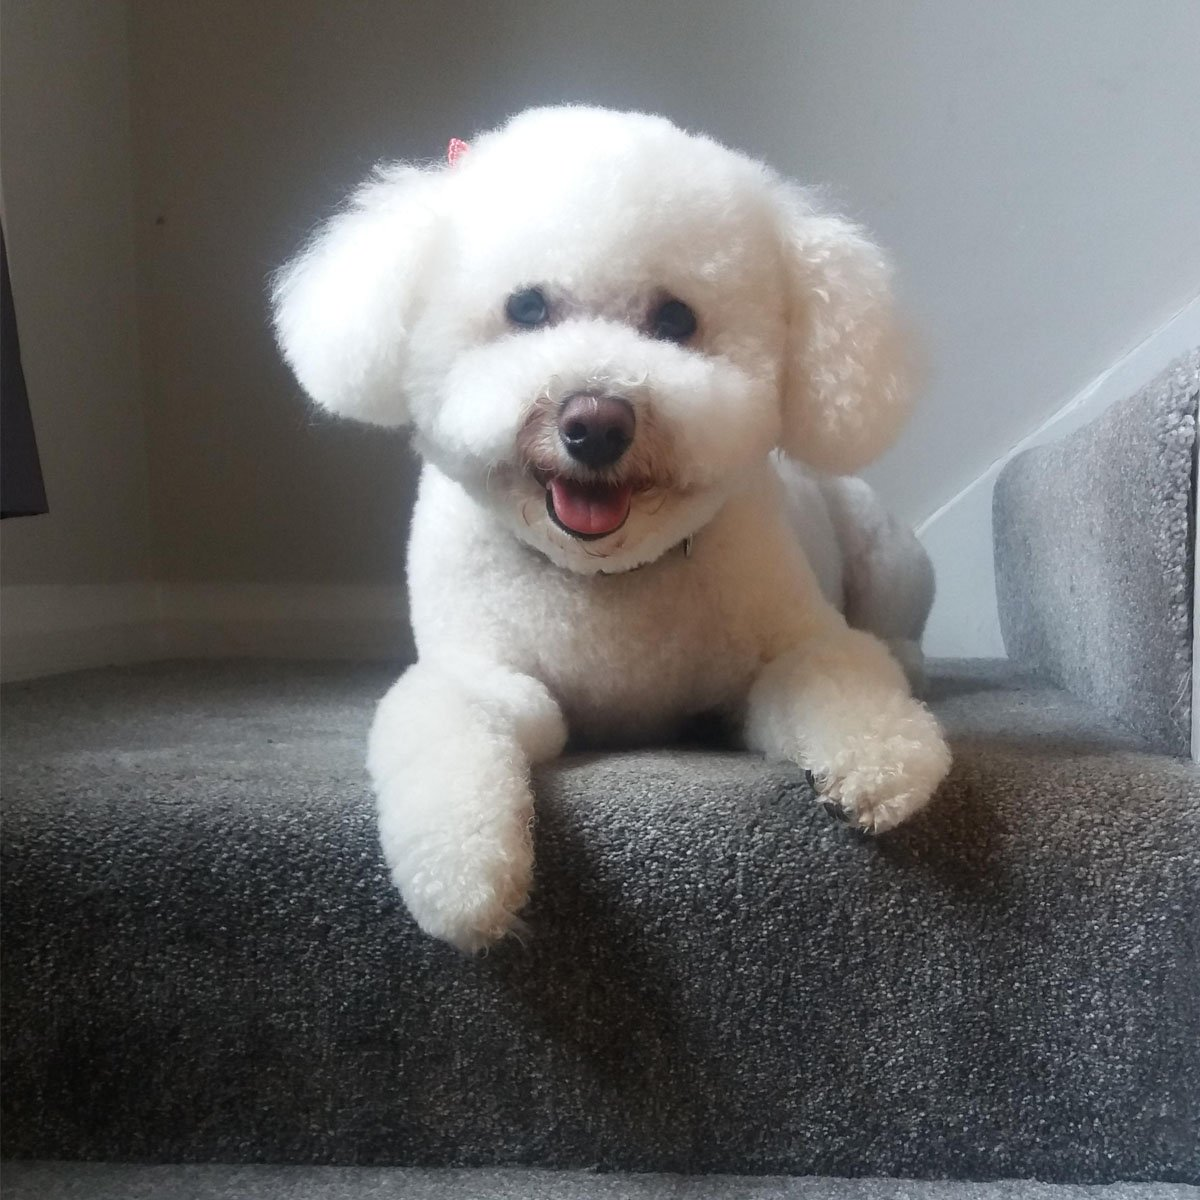 Borrowmydoggy On Twitter Waiting Eagerly To Show Off Your New Haircut In The Park Newdoggysignup Mango The Bichon Frise From Greater London